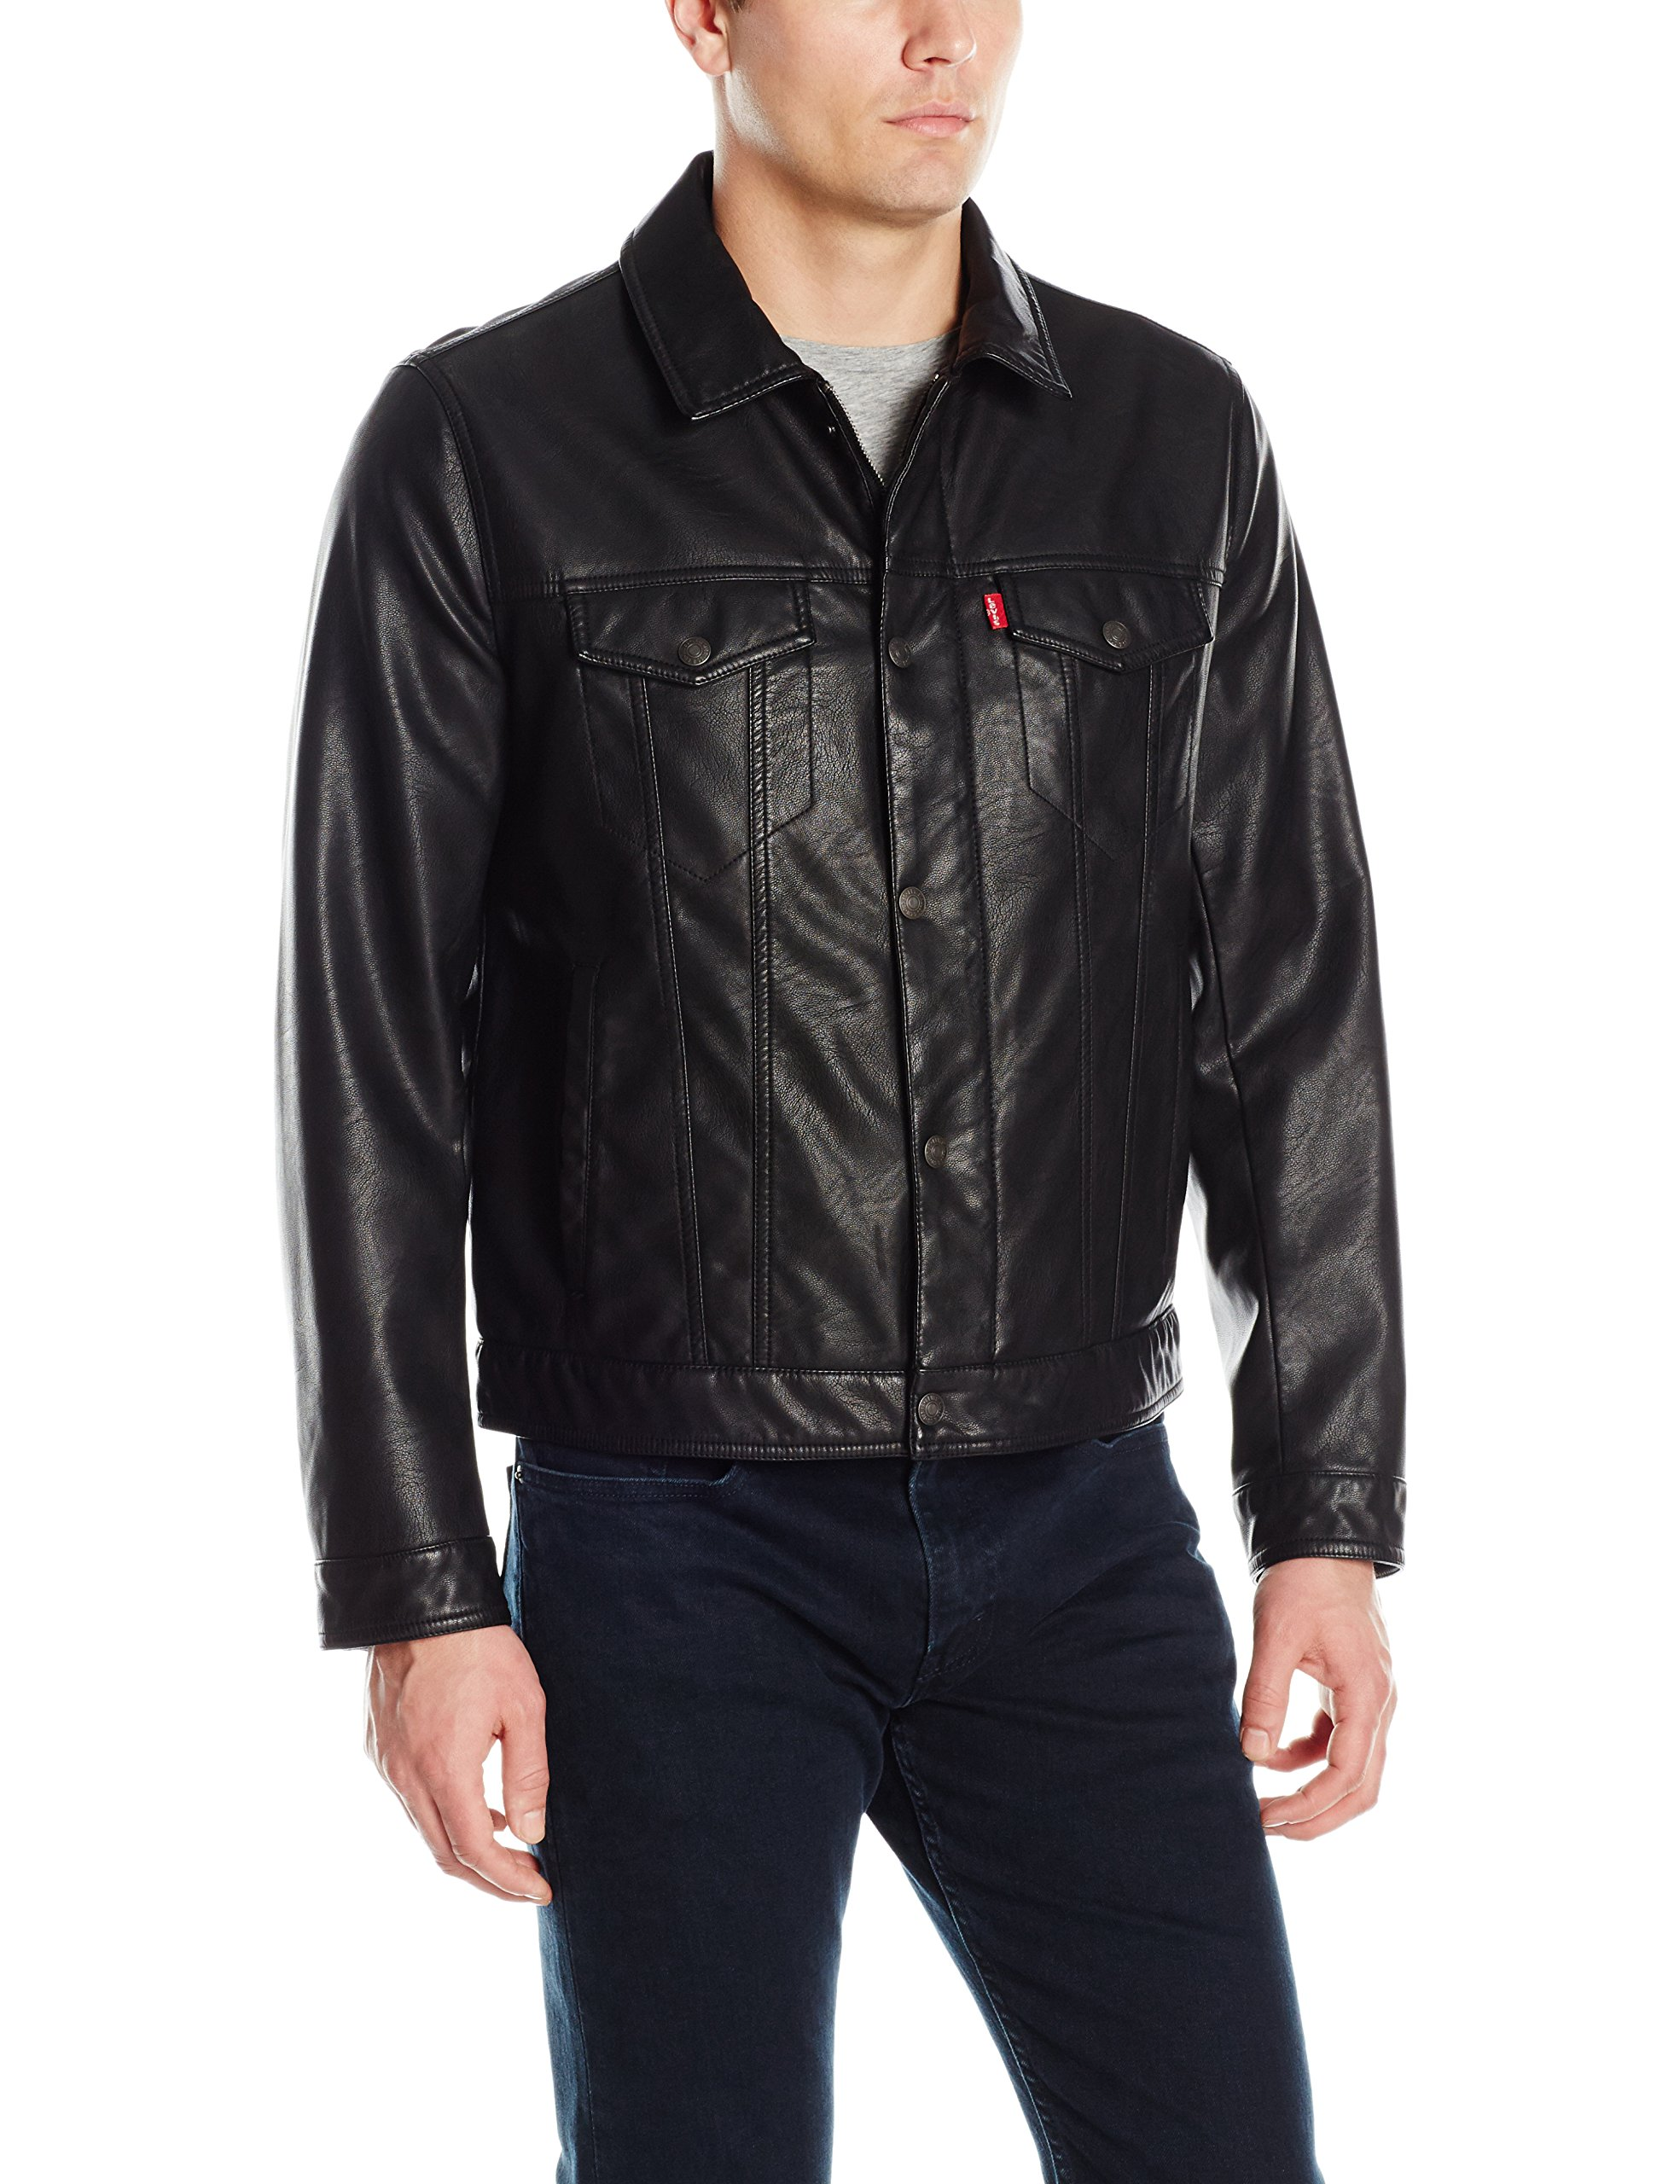 Levi's Men's Smooth Lamb Touch Faux Leather Classic Trucker Jacket, Black, Medium